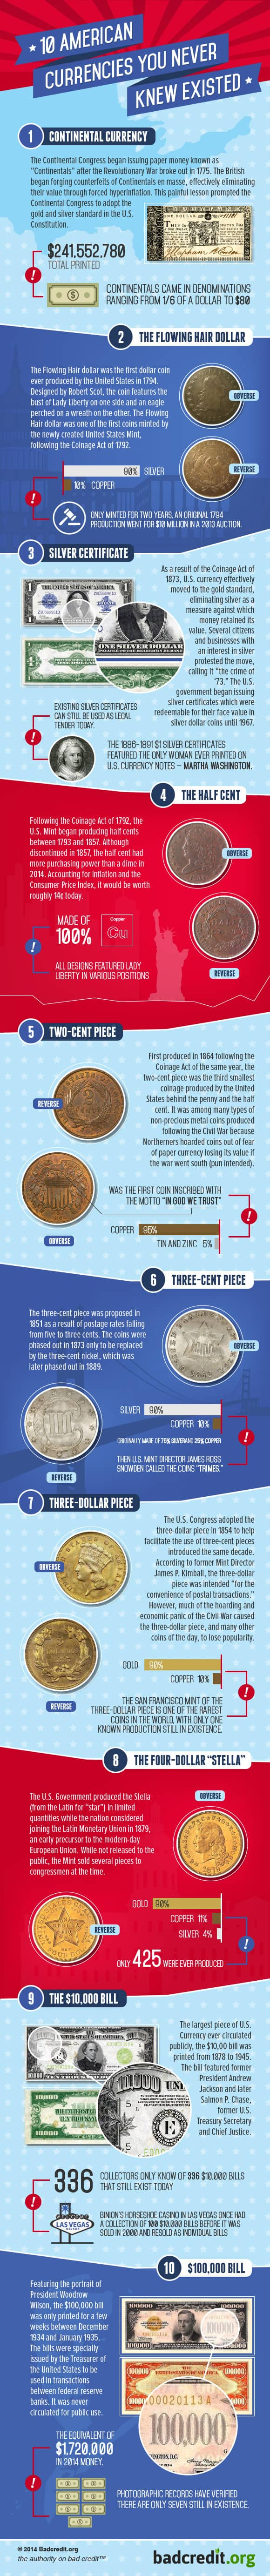 10 American Currencies You Never Knew Existed